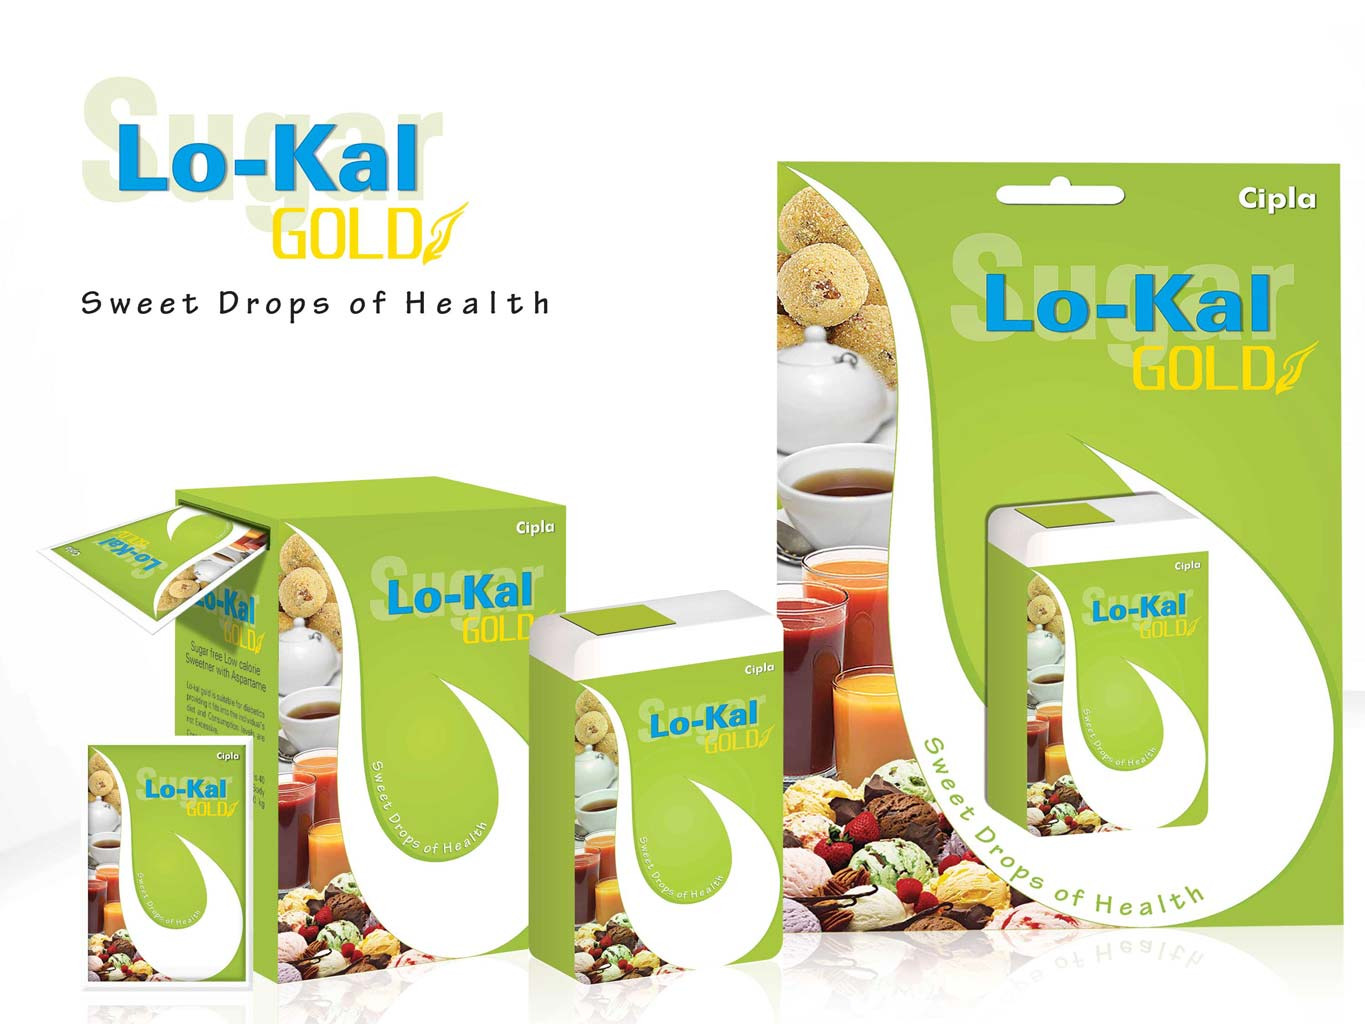 All Lo-kal Green